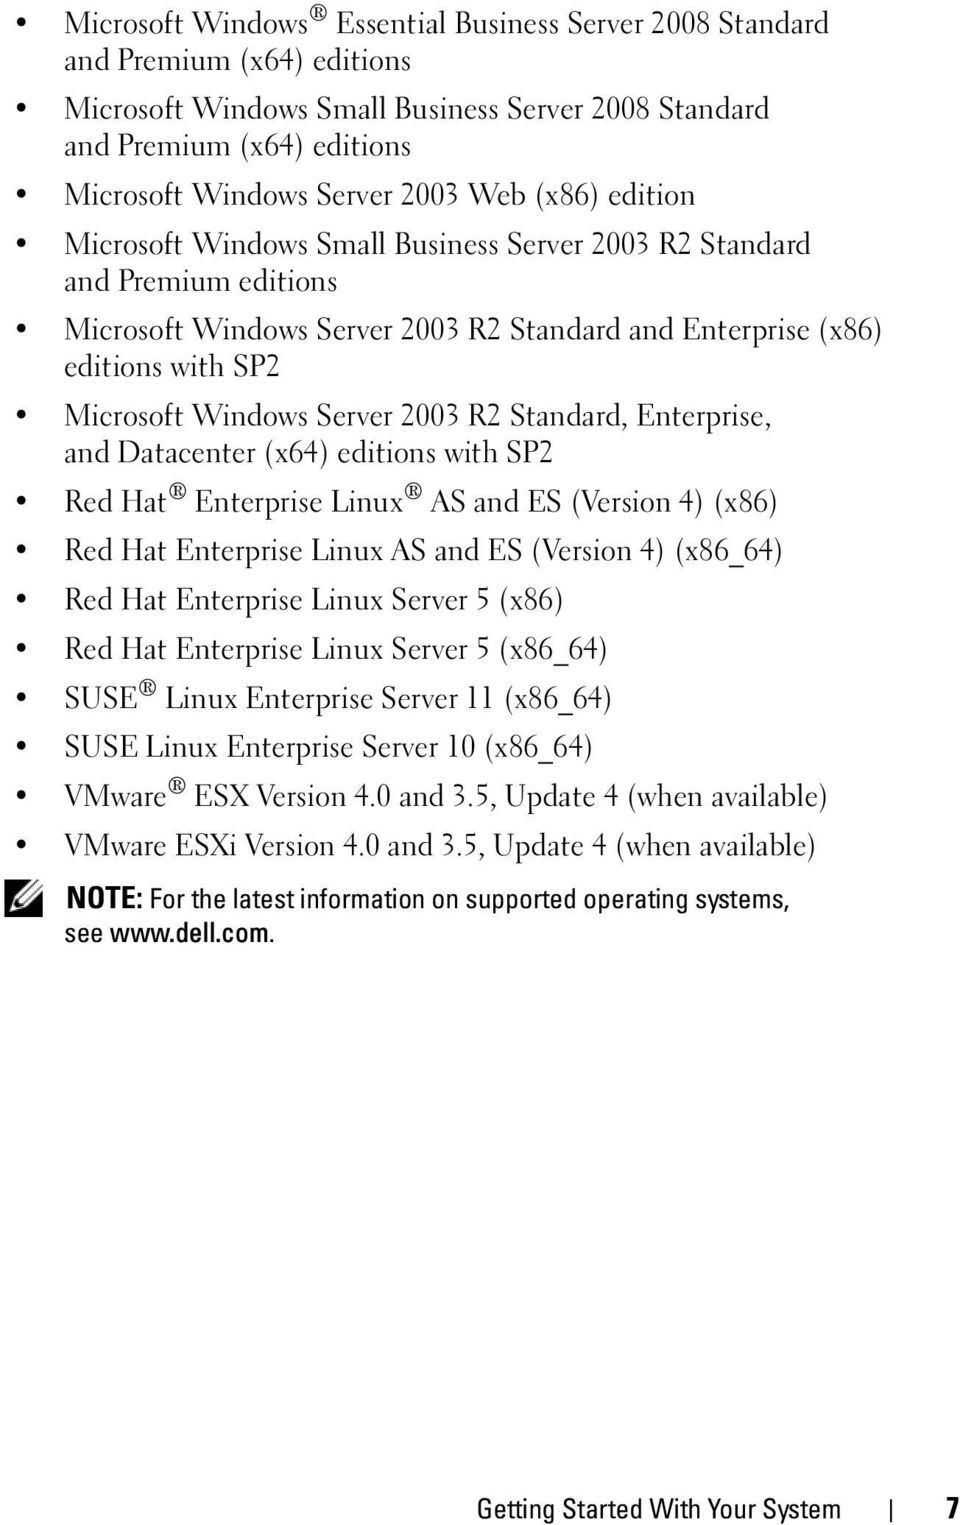 2003 R2 Standard, Enterprise, and Datacenter (x64) editions with SP2 Red Hat Enterprise Linux AS and ES (Version 4) (x86) Red Hat Enterprise Linux AS and ES (Version 4) (x86_64) Red Hat Enterprise